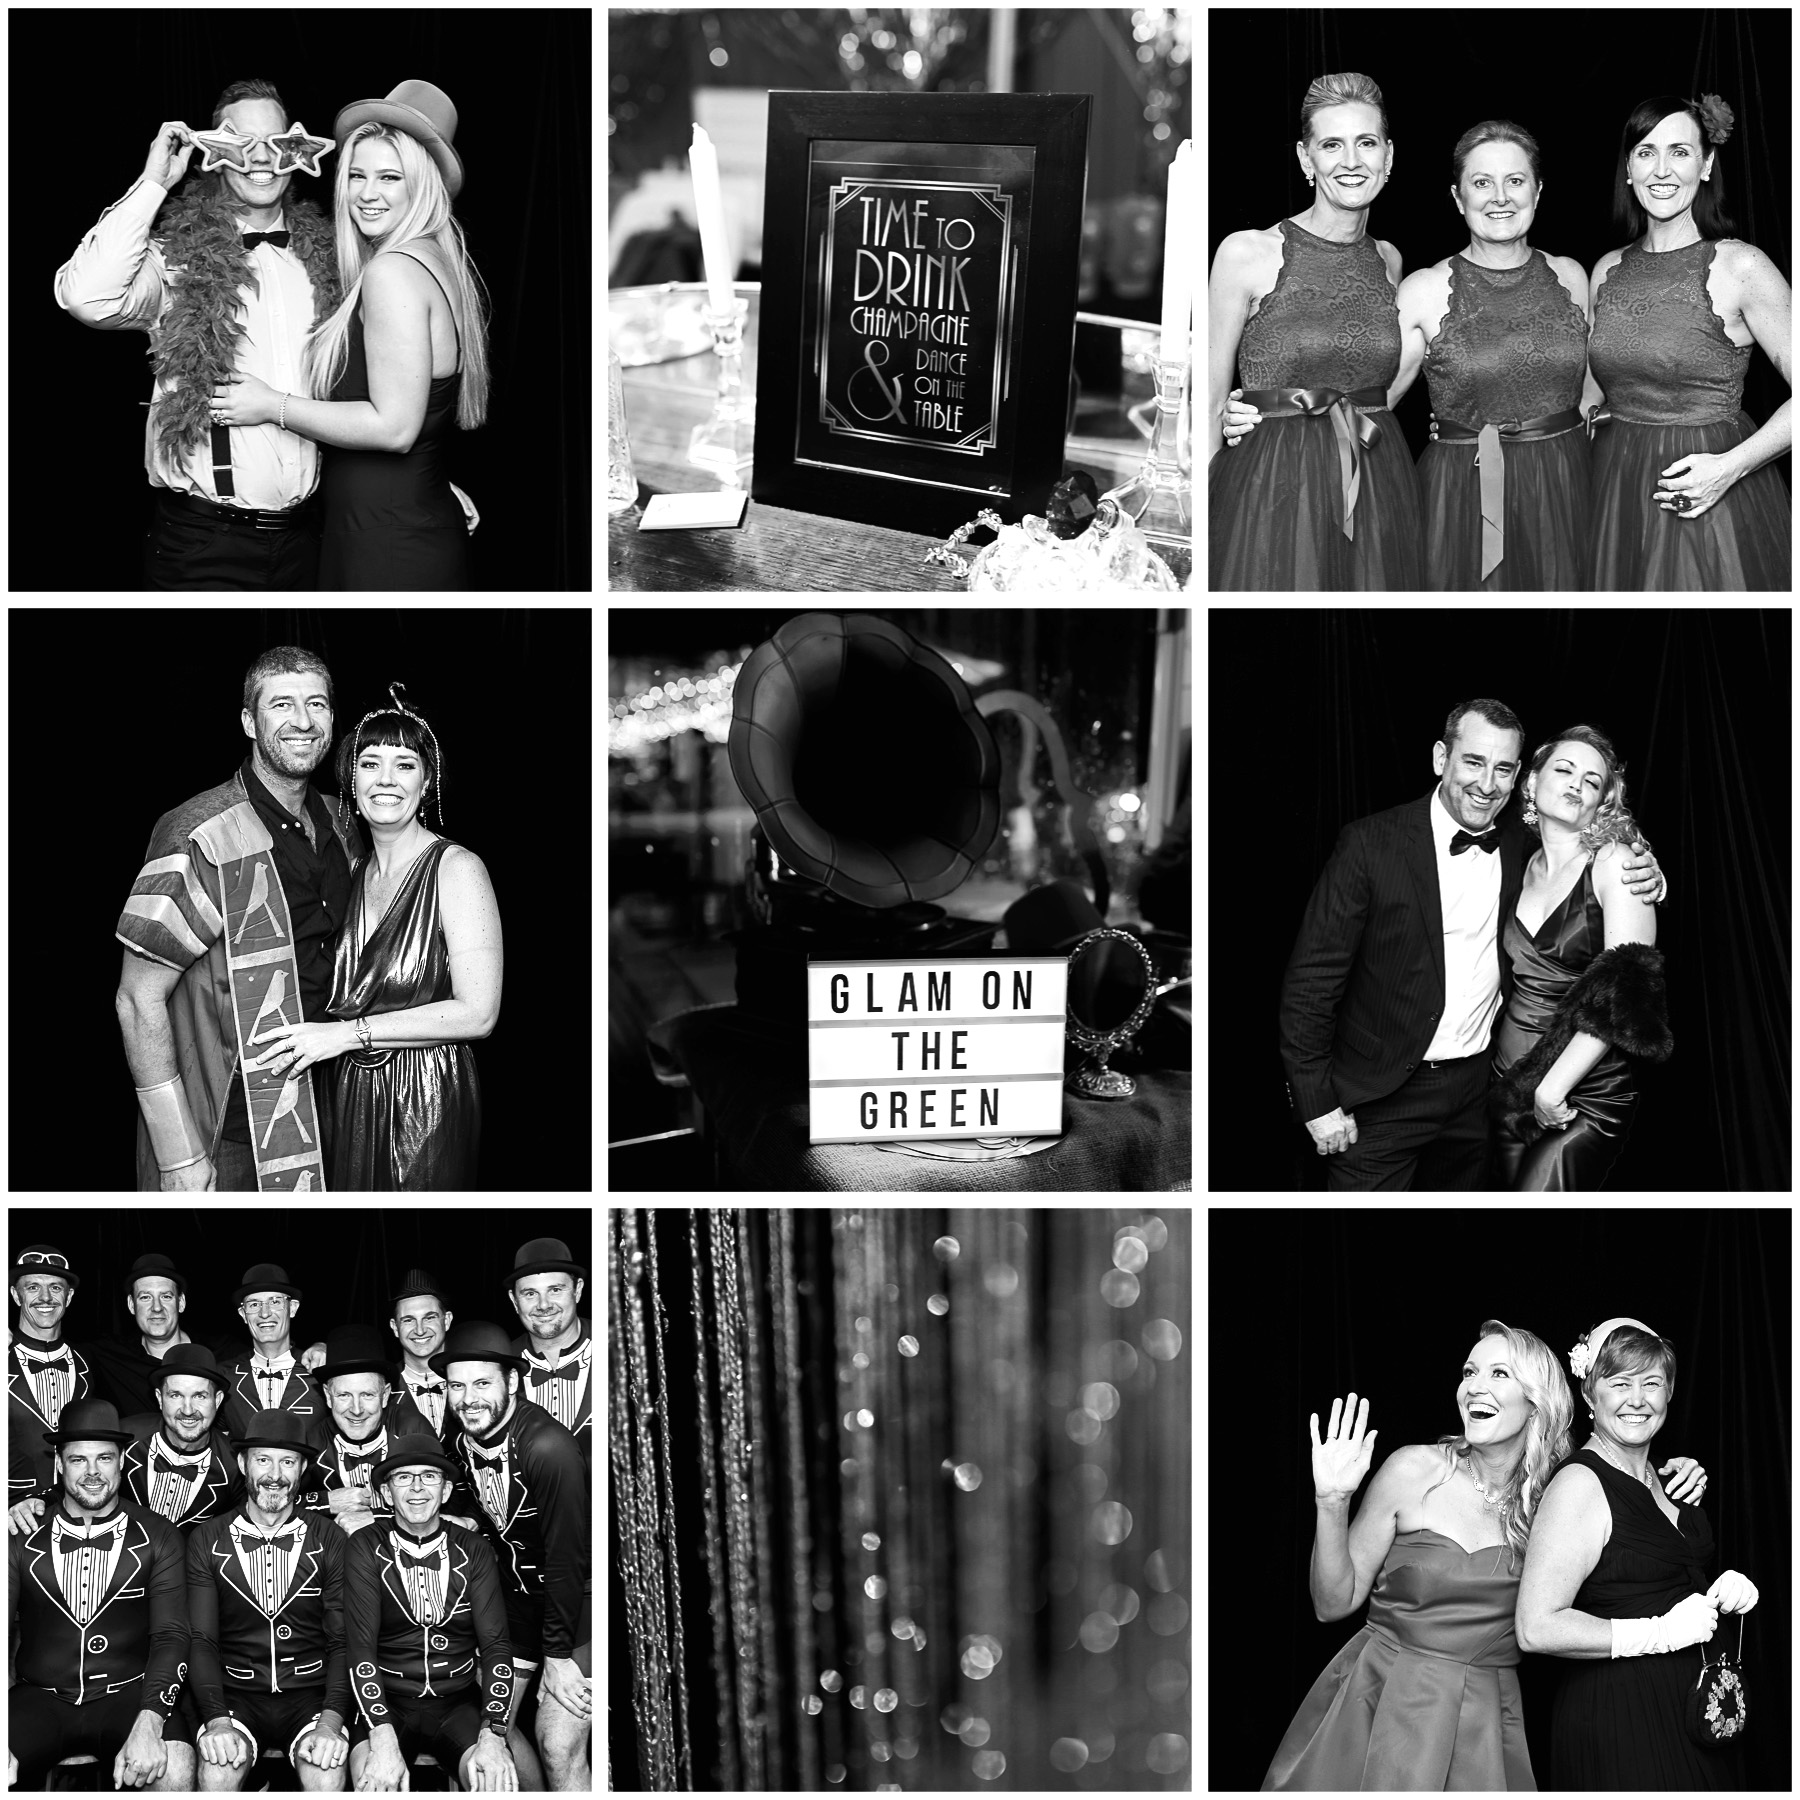 Black and white image collage of Glam on the Green fundraiser event in Sutherland Shire Sydney